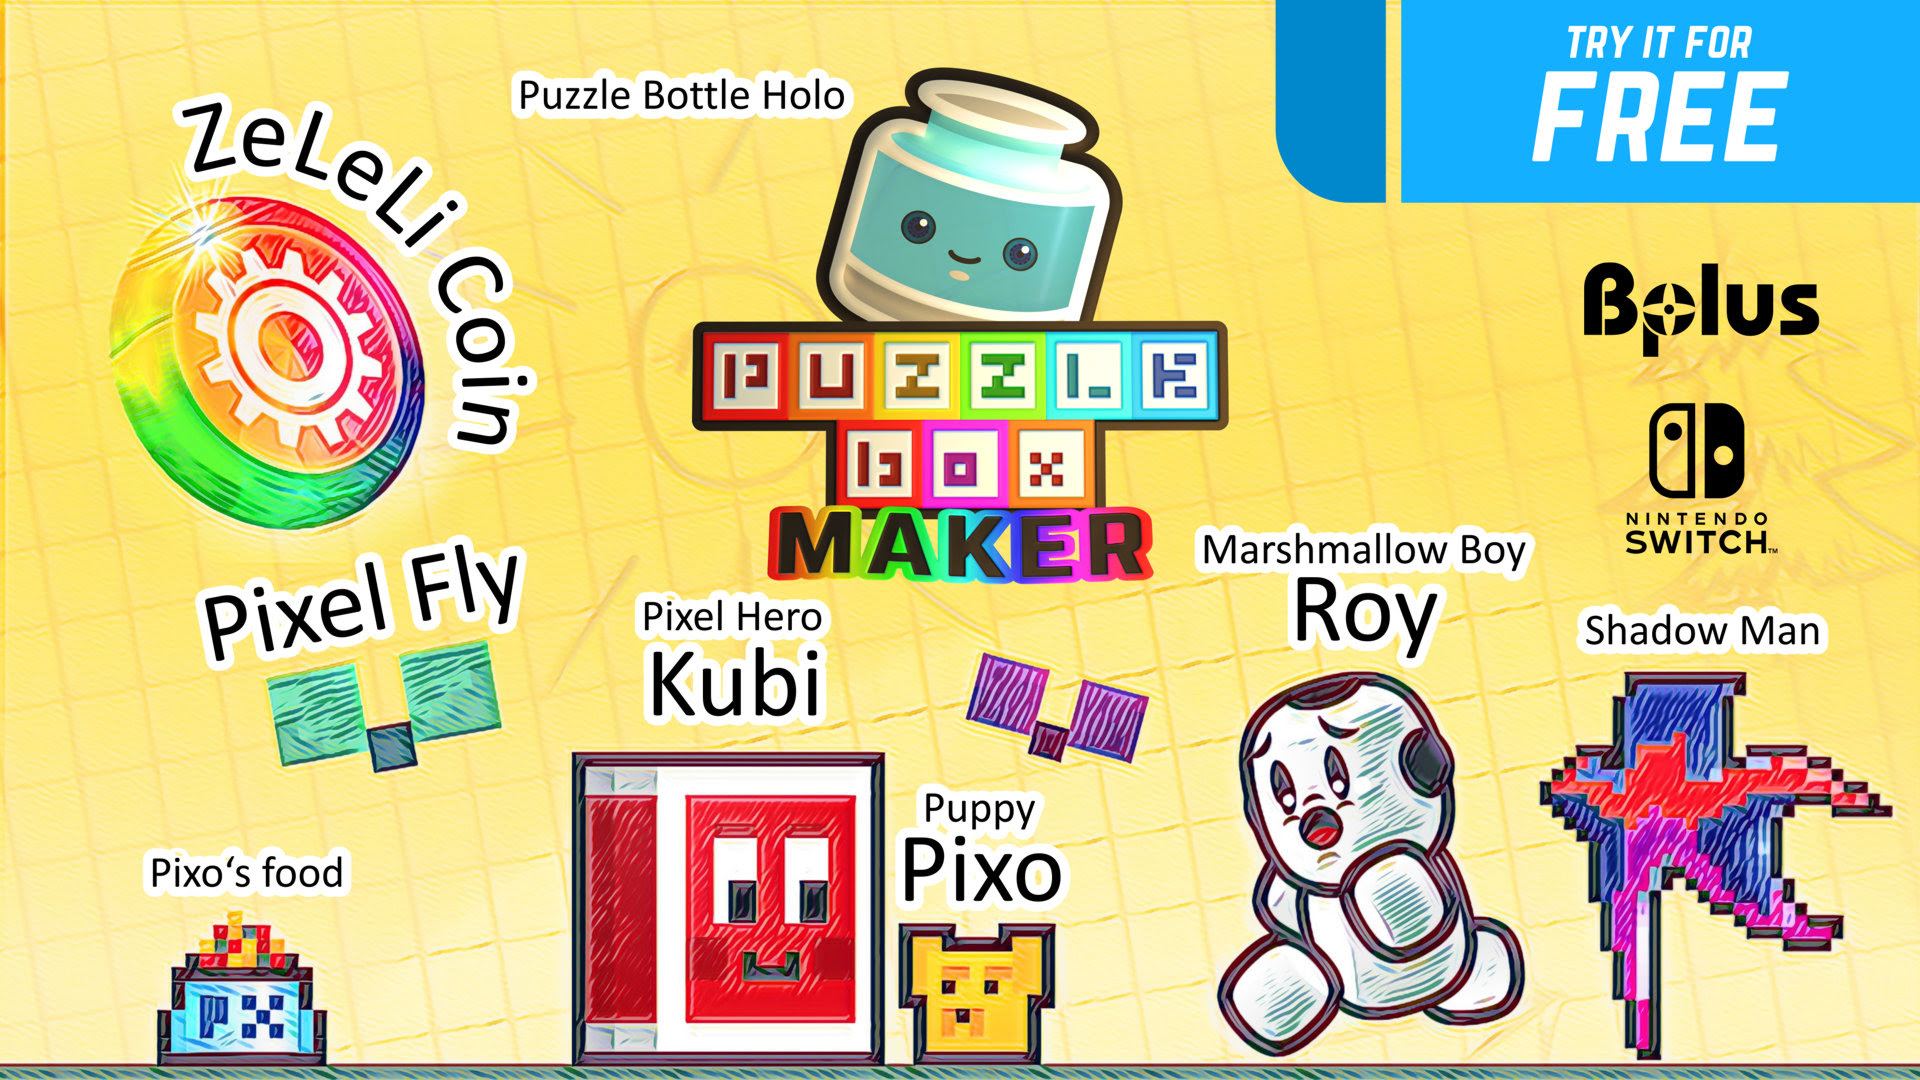 Puzzle Box Maker Demo now available in Europe